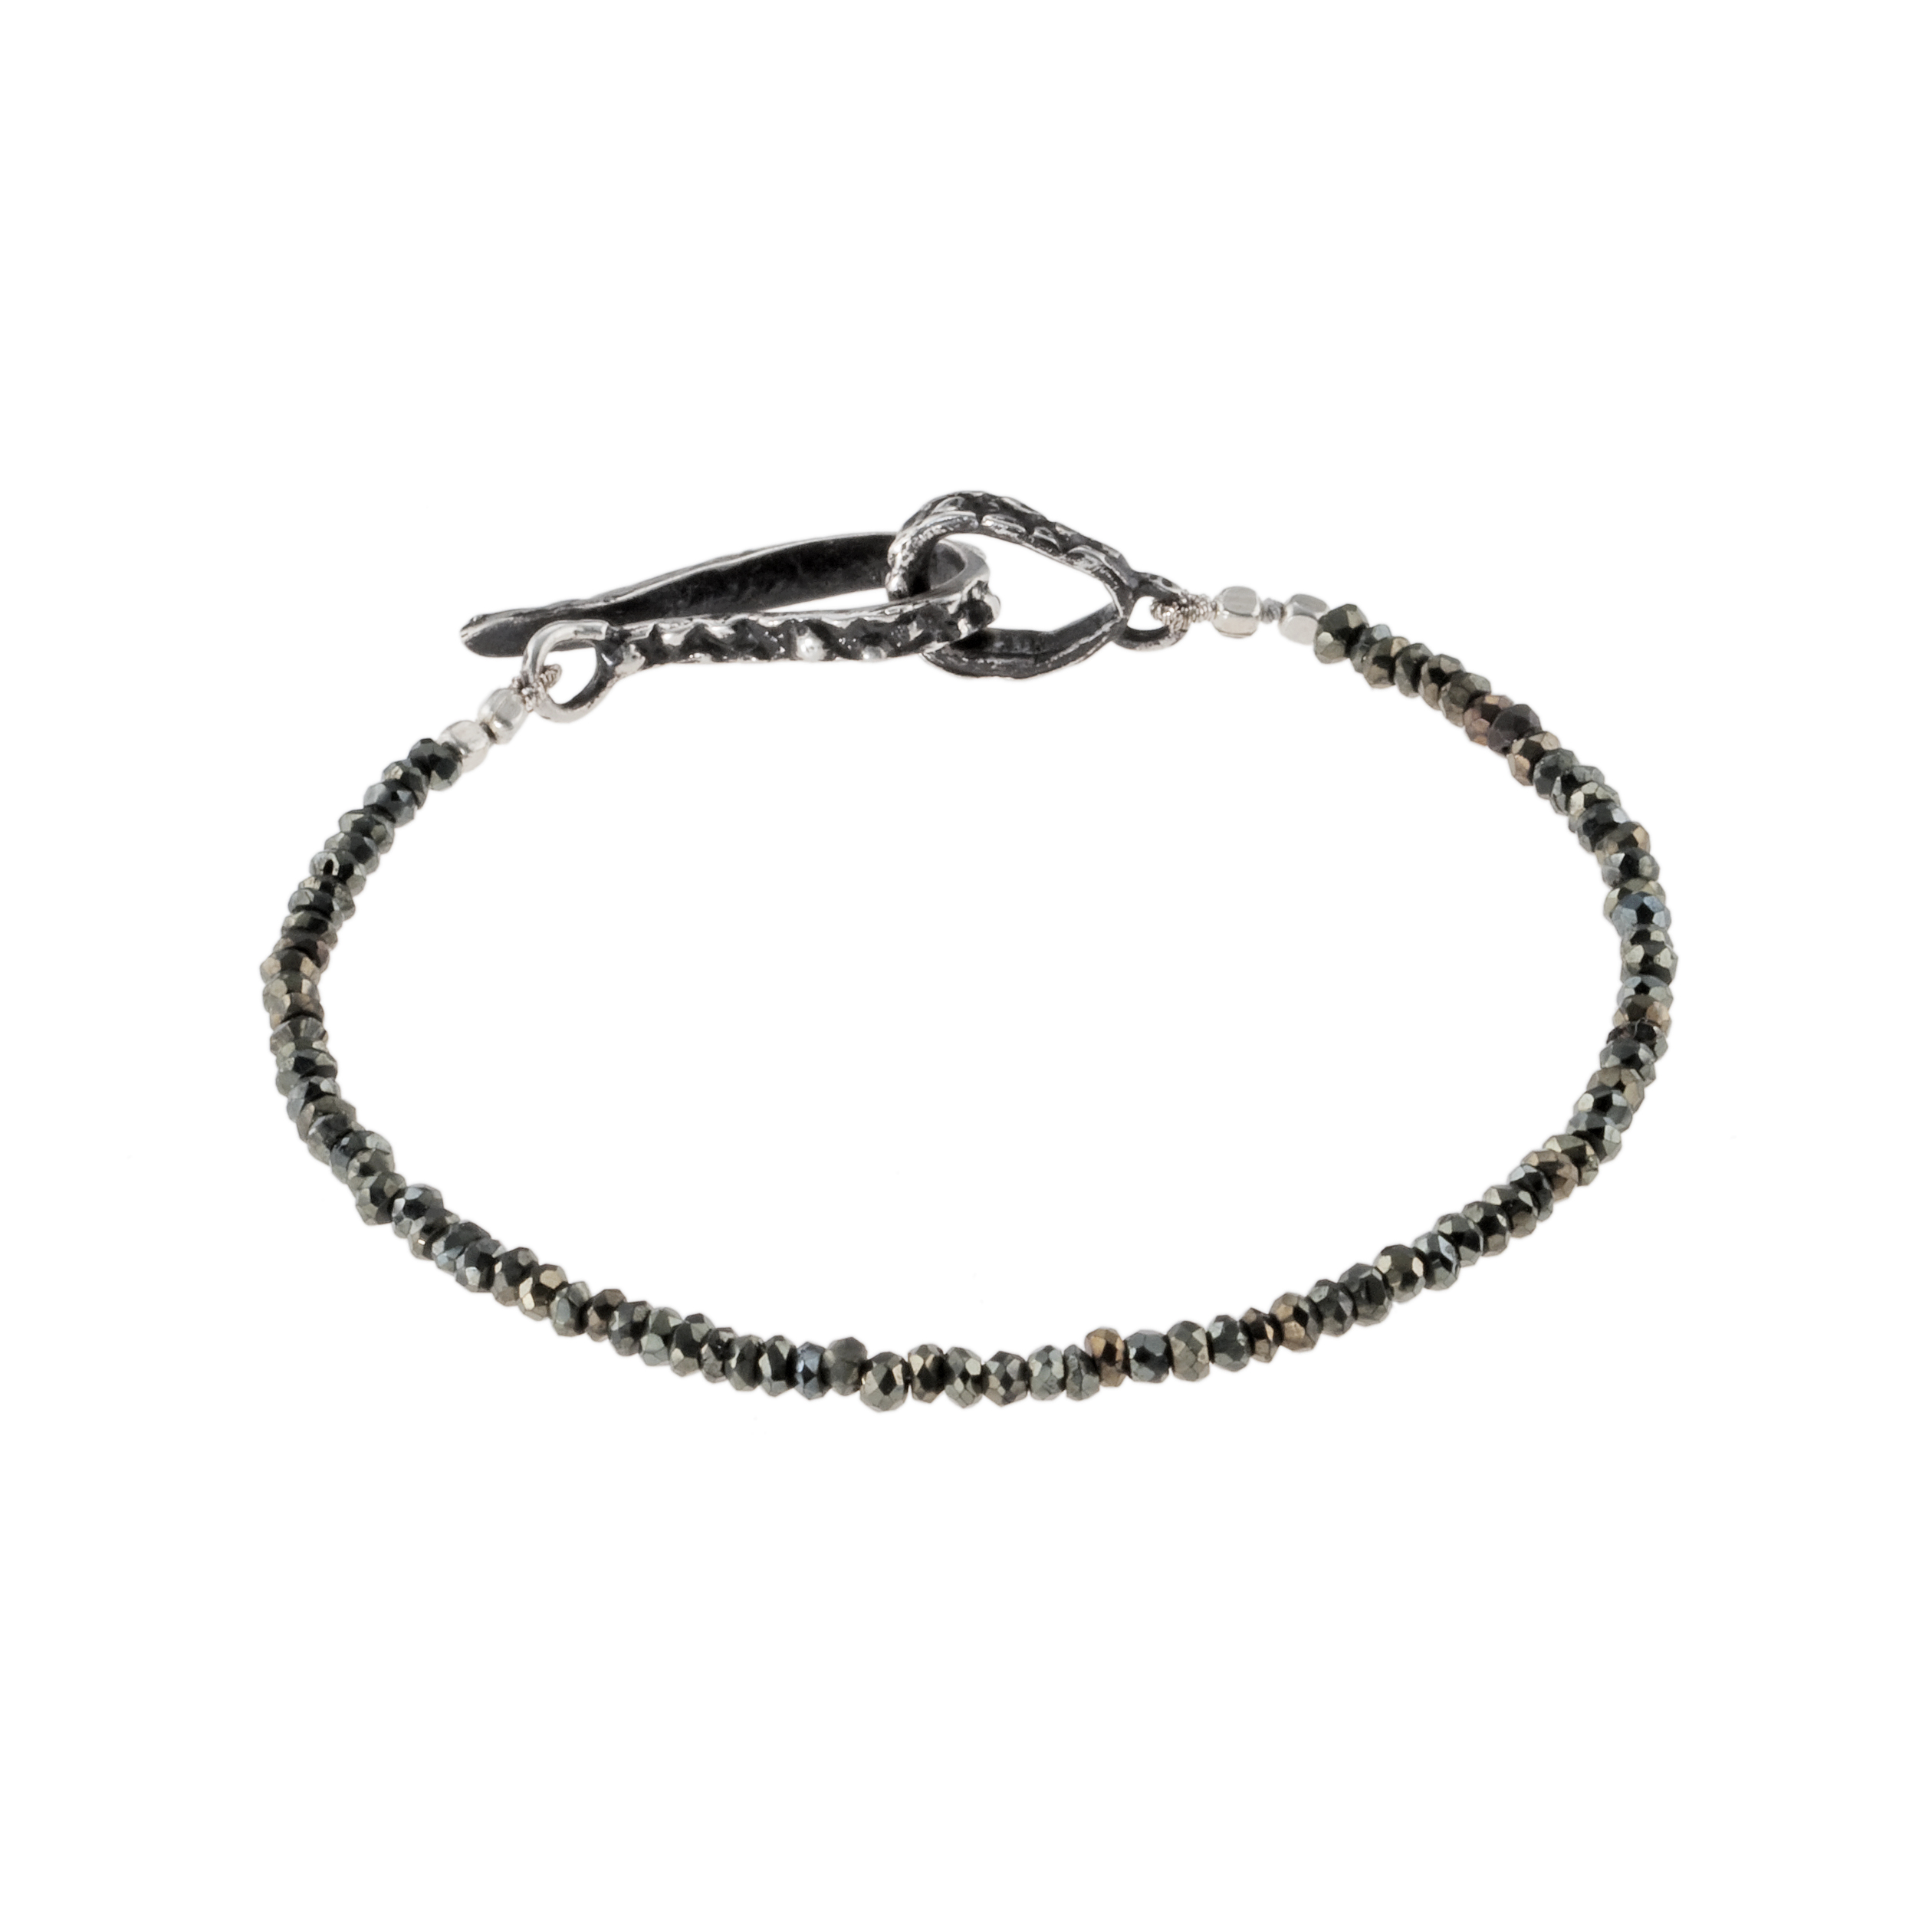 Lauren Wolf: Single Strand Black Spinel Bracelet